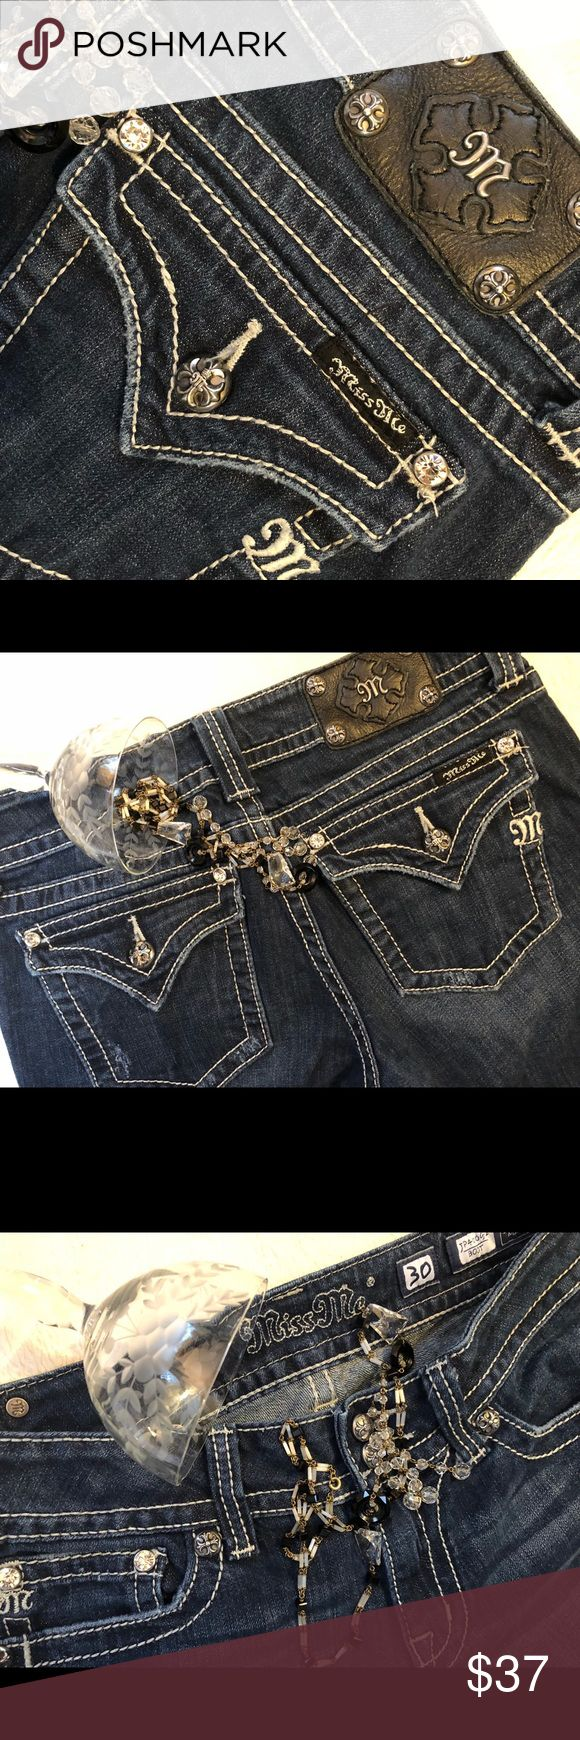 Miss Me jeans W 30 I 32 distressed Miss Me Jeans W30 R8 I32 . Good used condition. Gems and cute cross buttons ! Please check photos to make sure you are happy with distressing. A couple of loose stitches on one hem that could easily be repaired. Miss Me Jeans Boot Cut